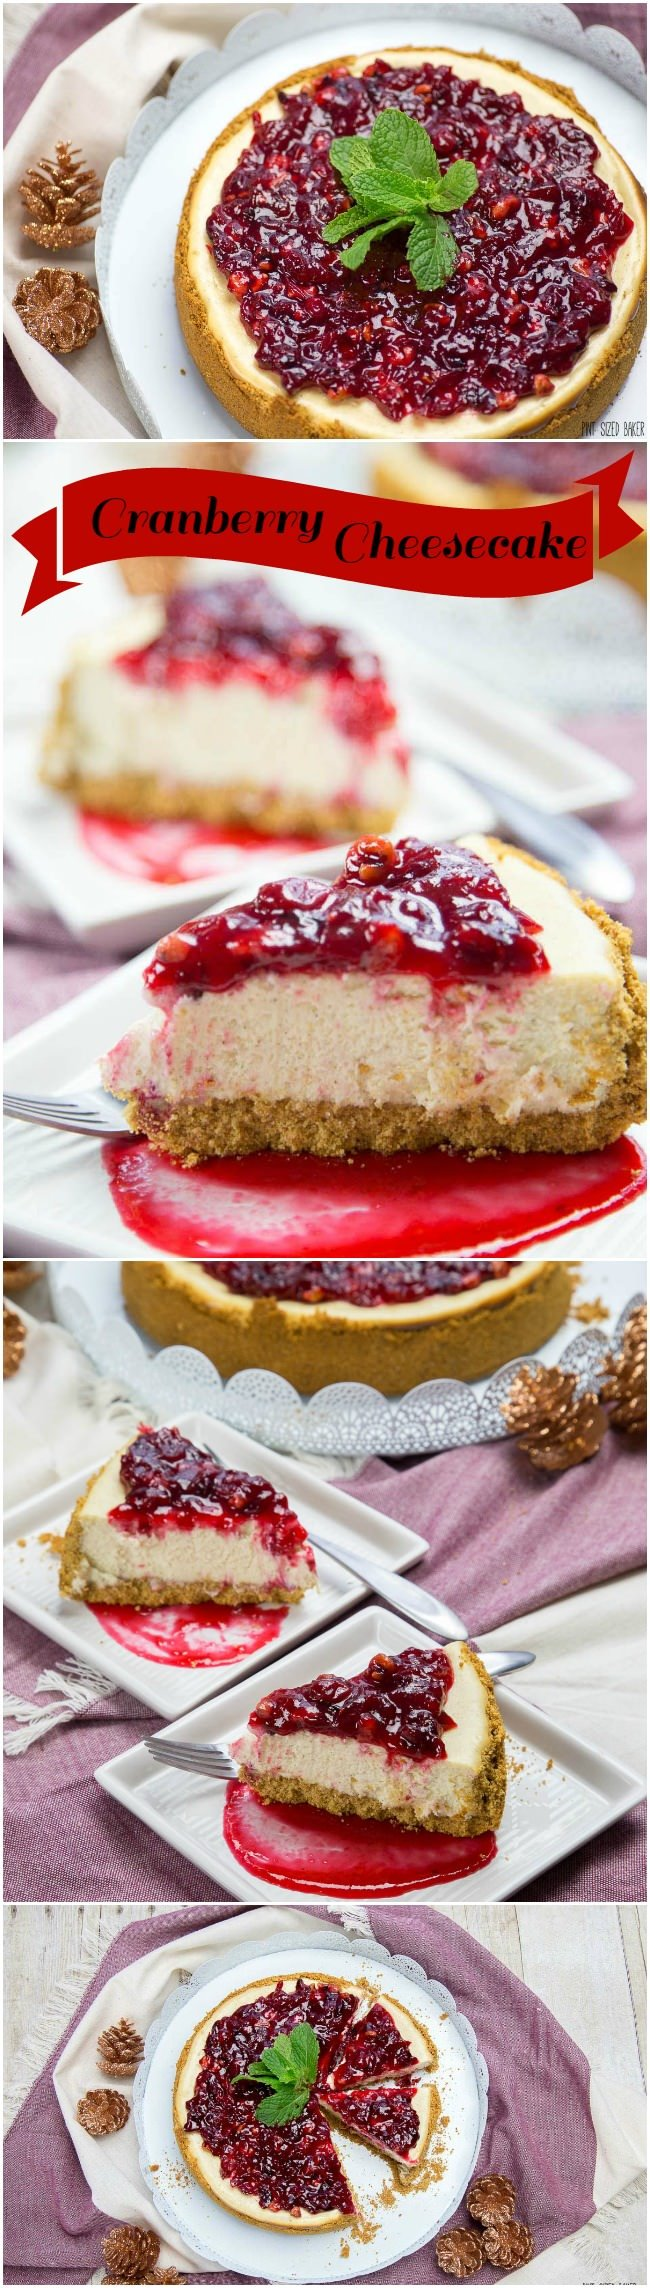 An easy Cheesecake recipe with the best homemade cranberry sauce on top. This Cranberry Cheesecake was the hit of my party!